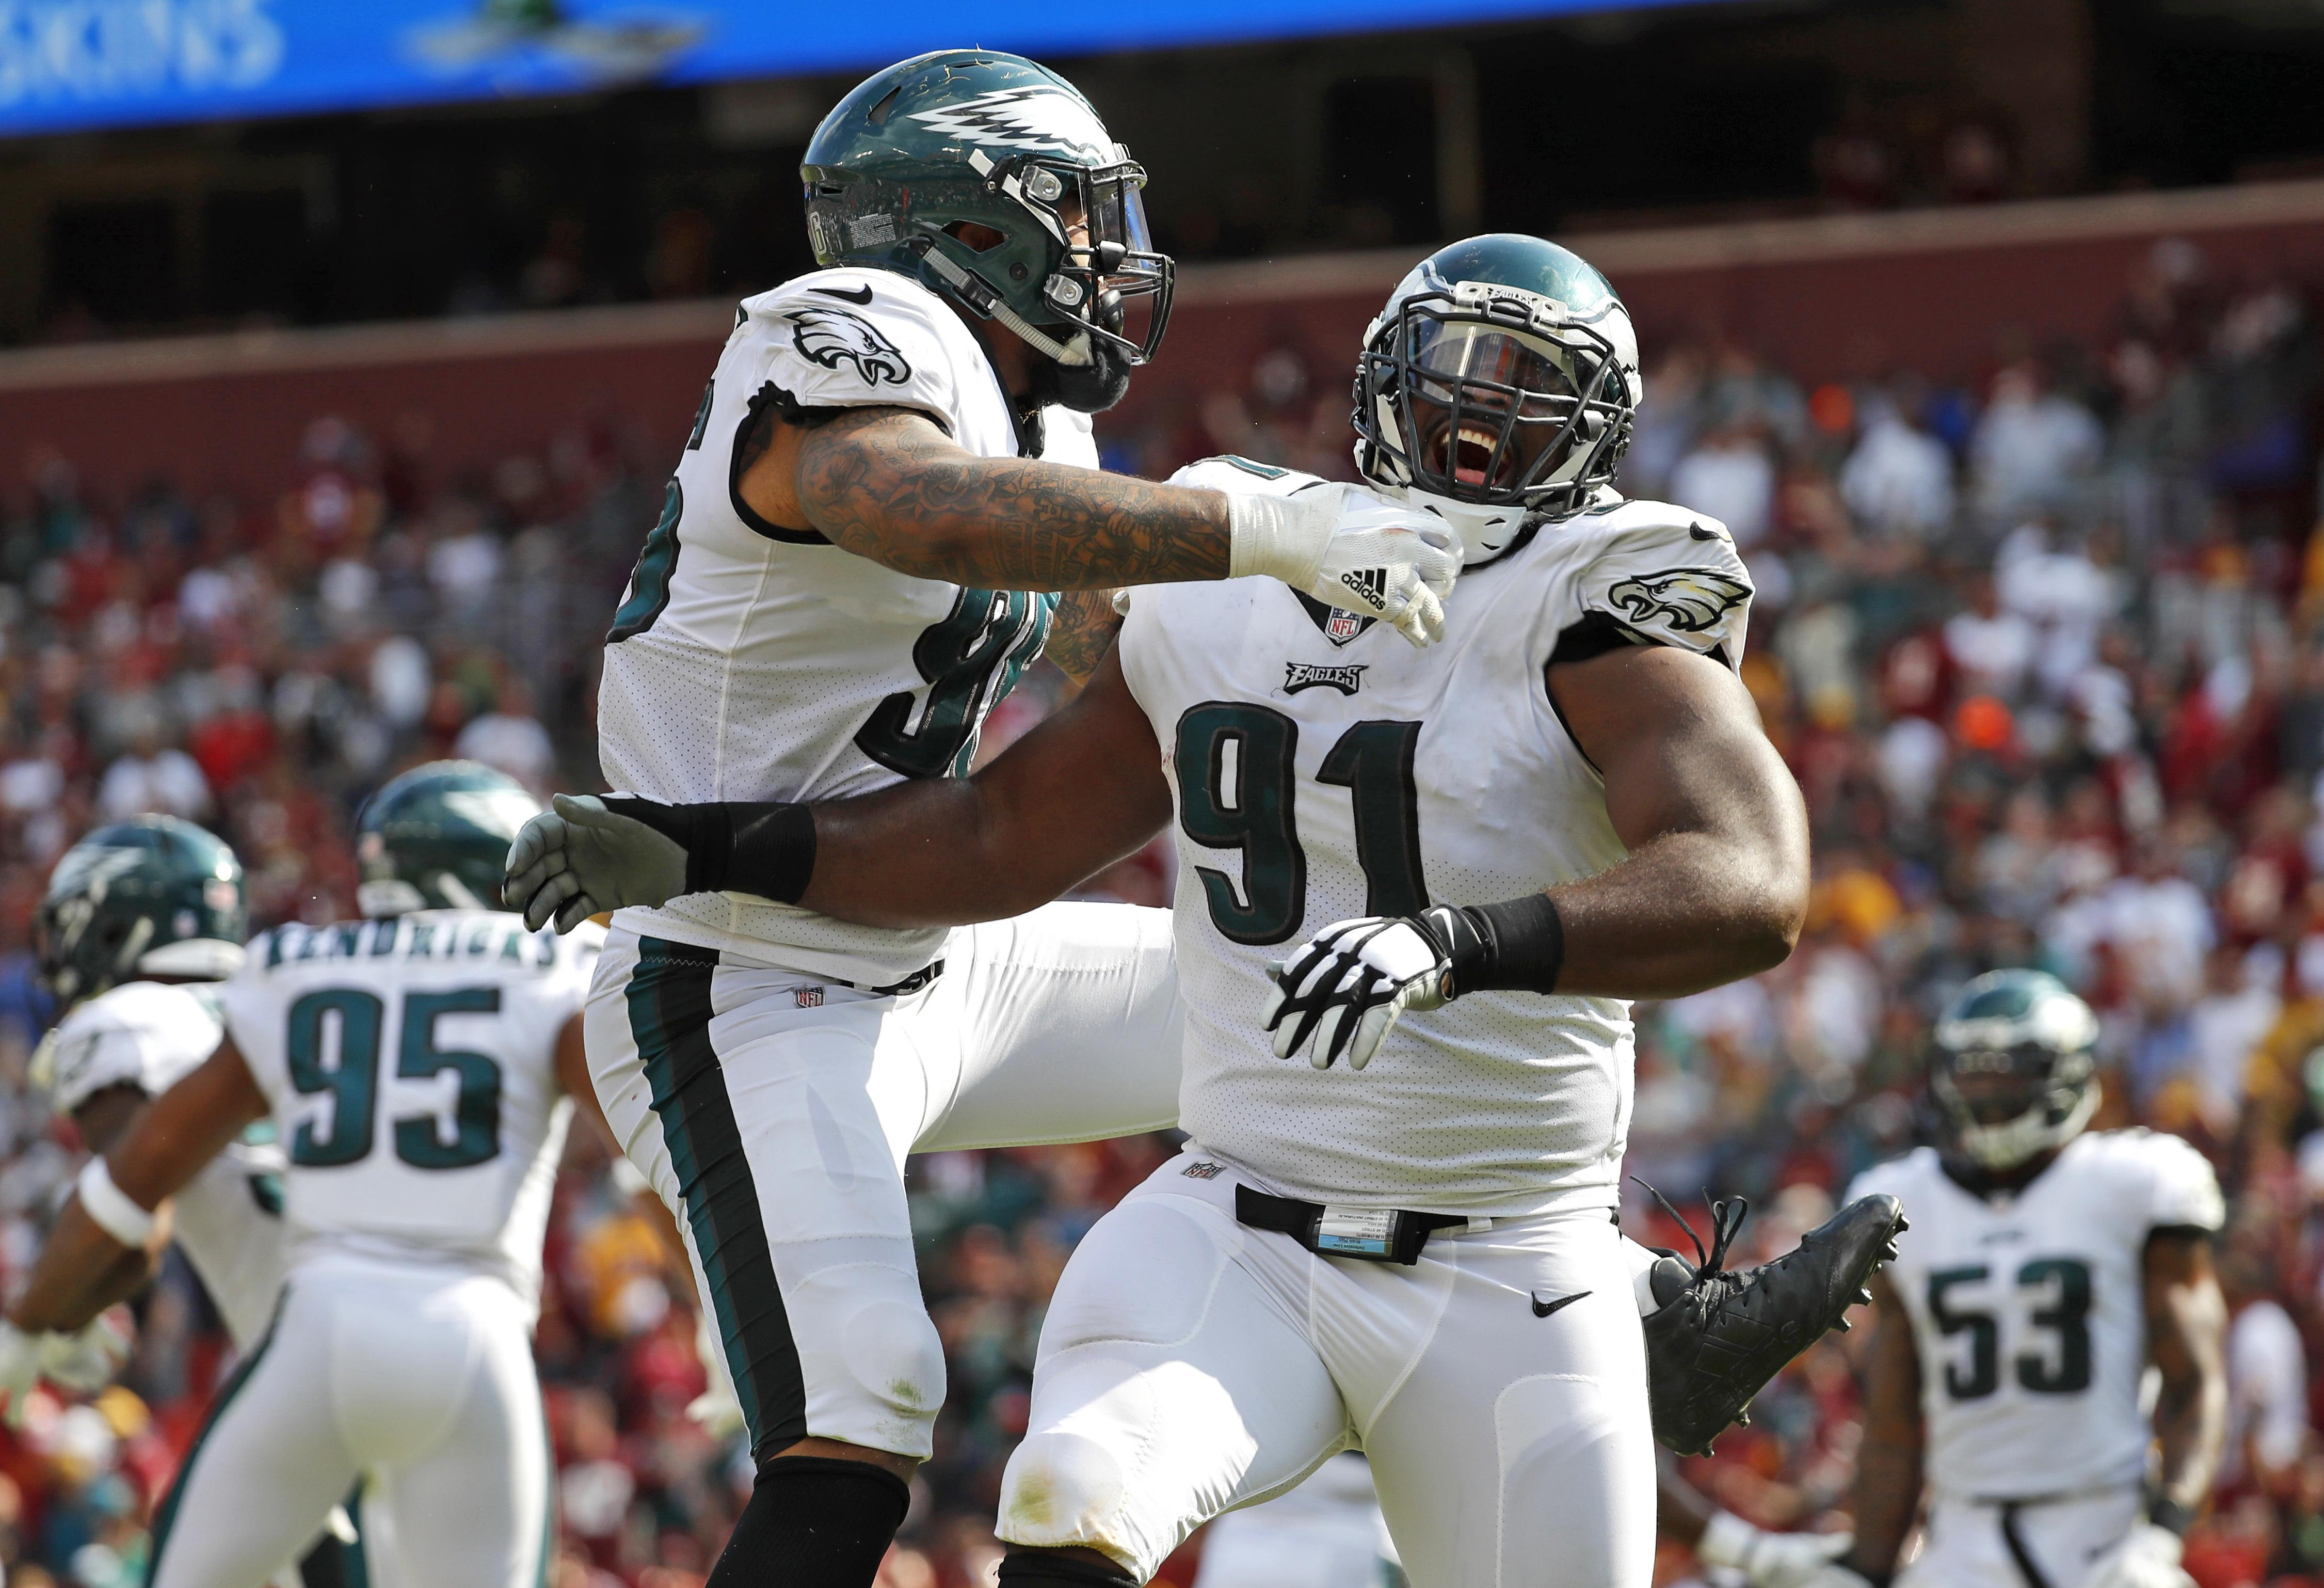 The Eagles' D is a frightening prospect and could prove decisive